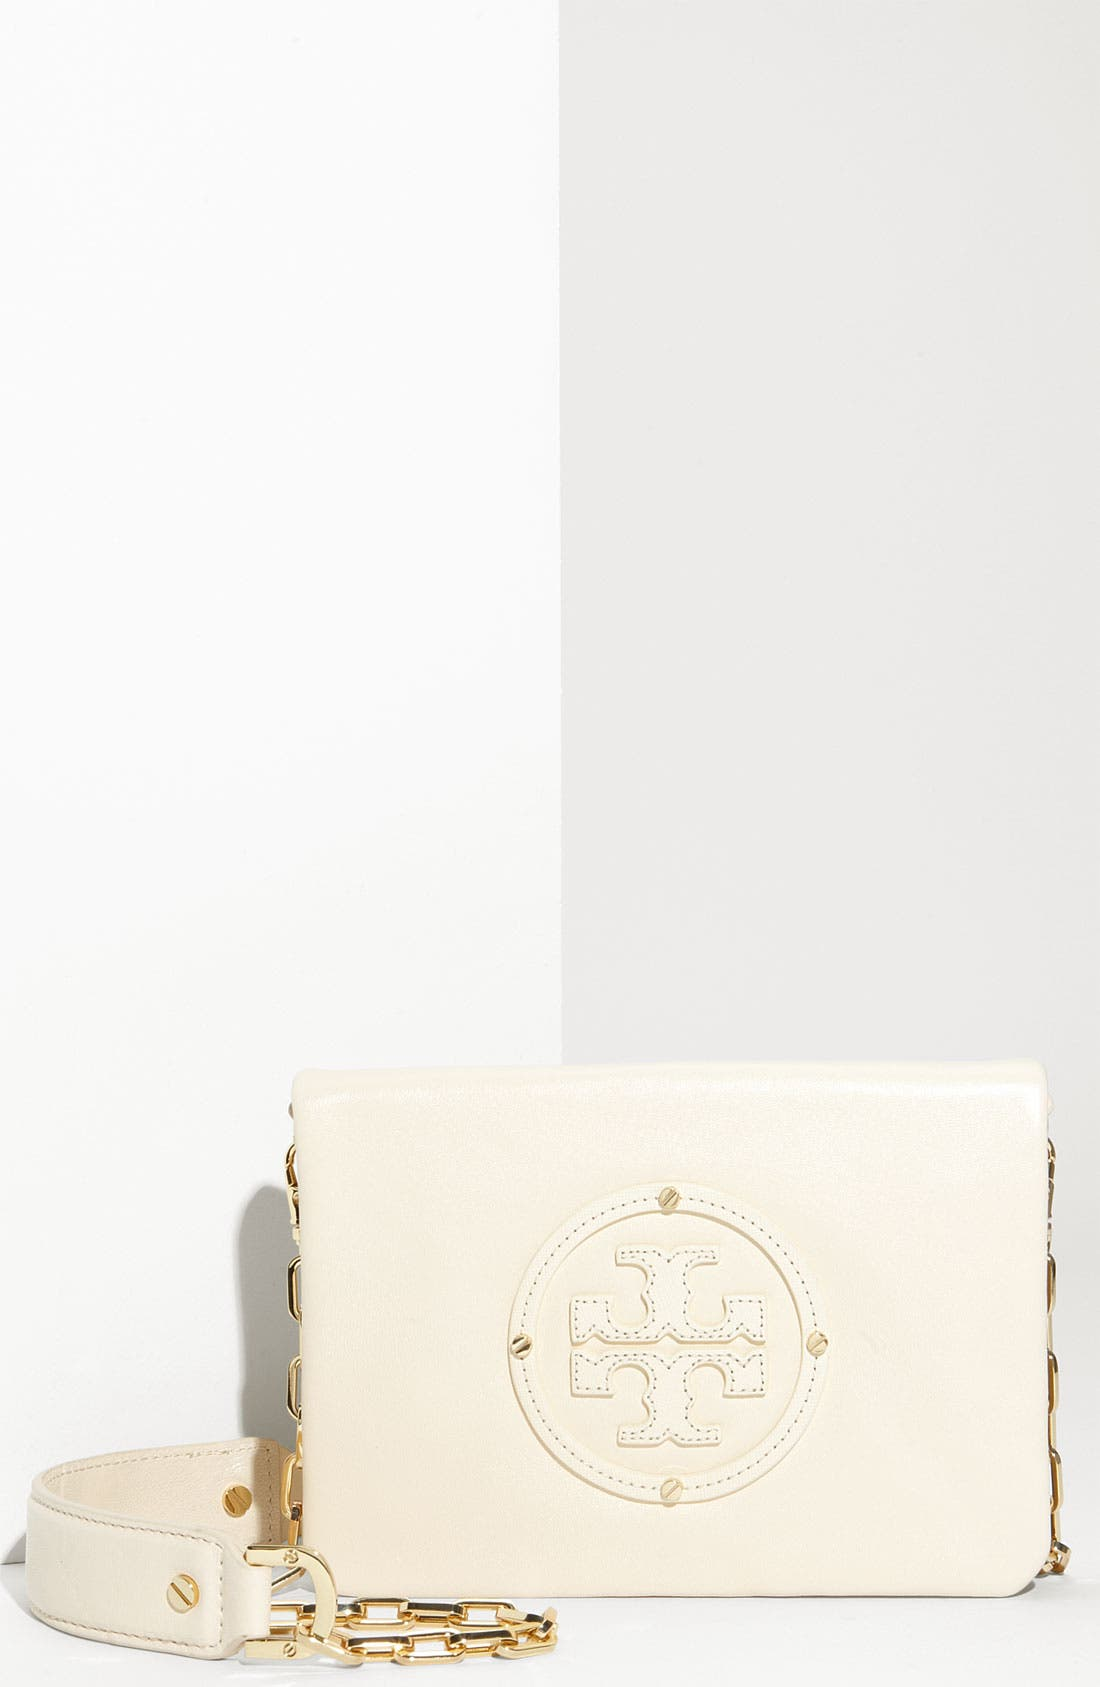 Alternate Image 1 Selected - Tory Burch 'Moonlight Stacked Logo - Reva' Leather Clutch